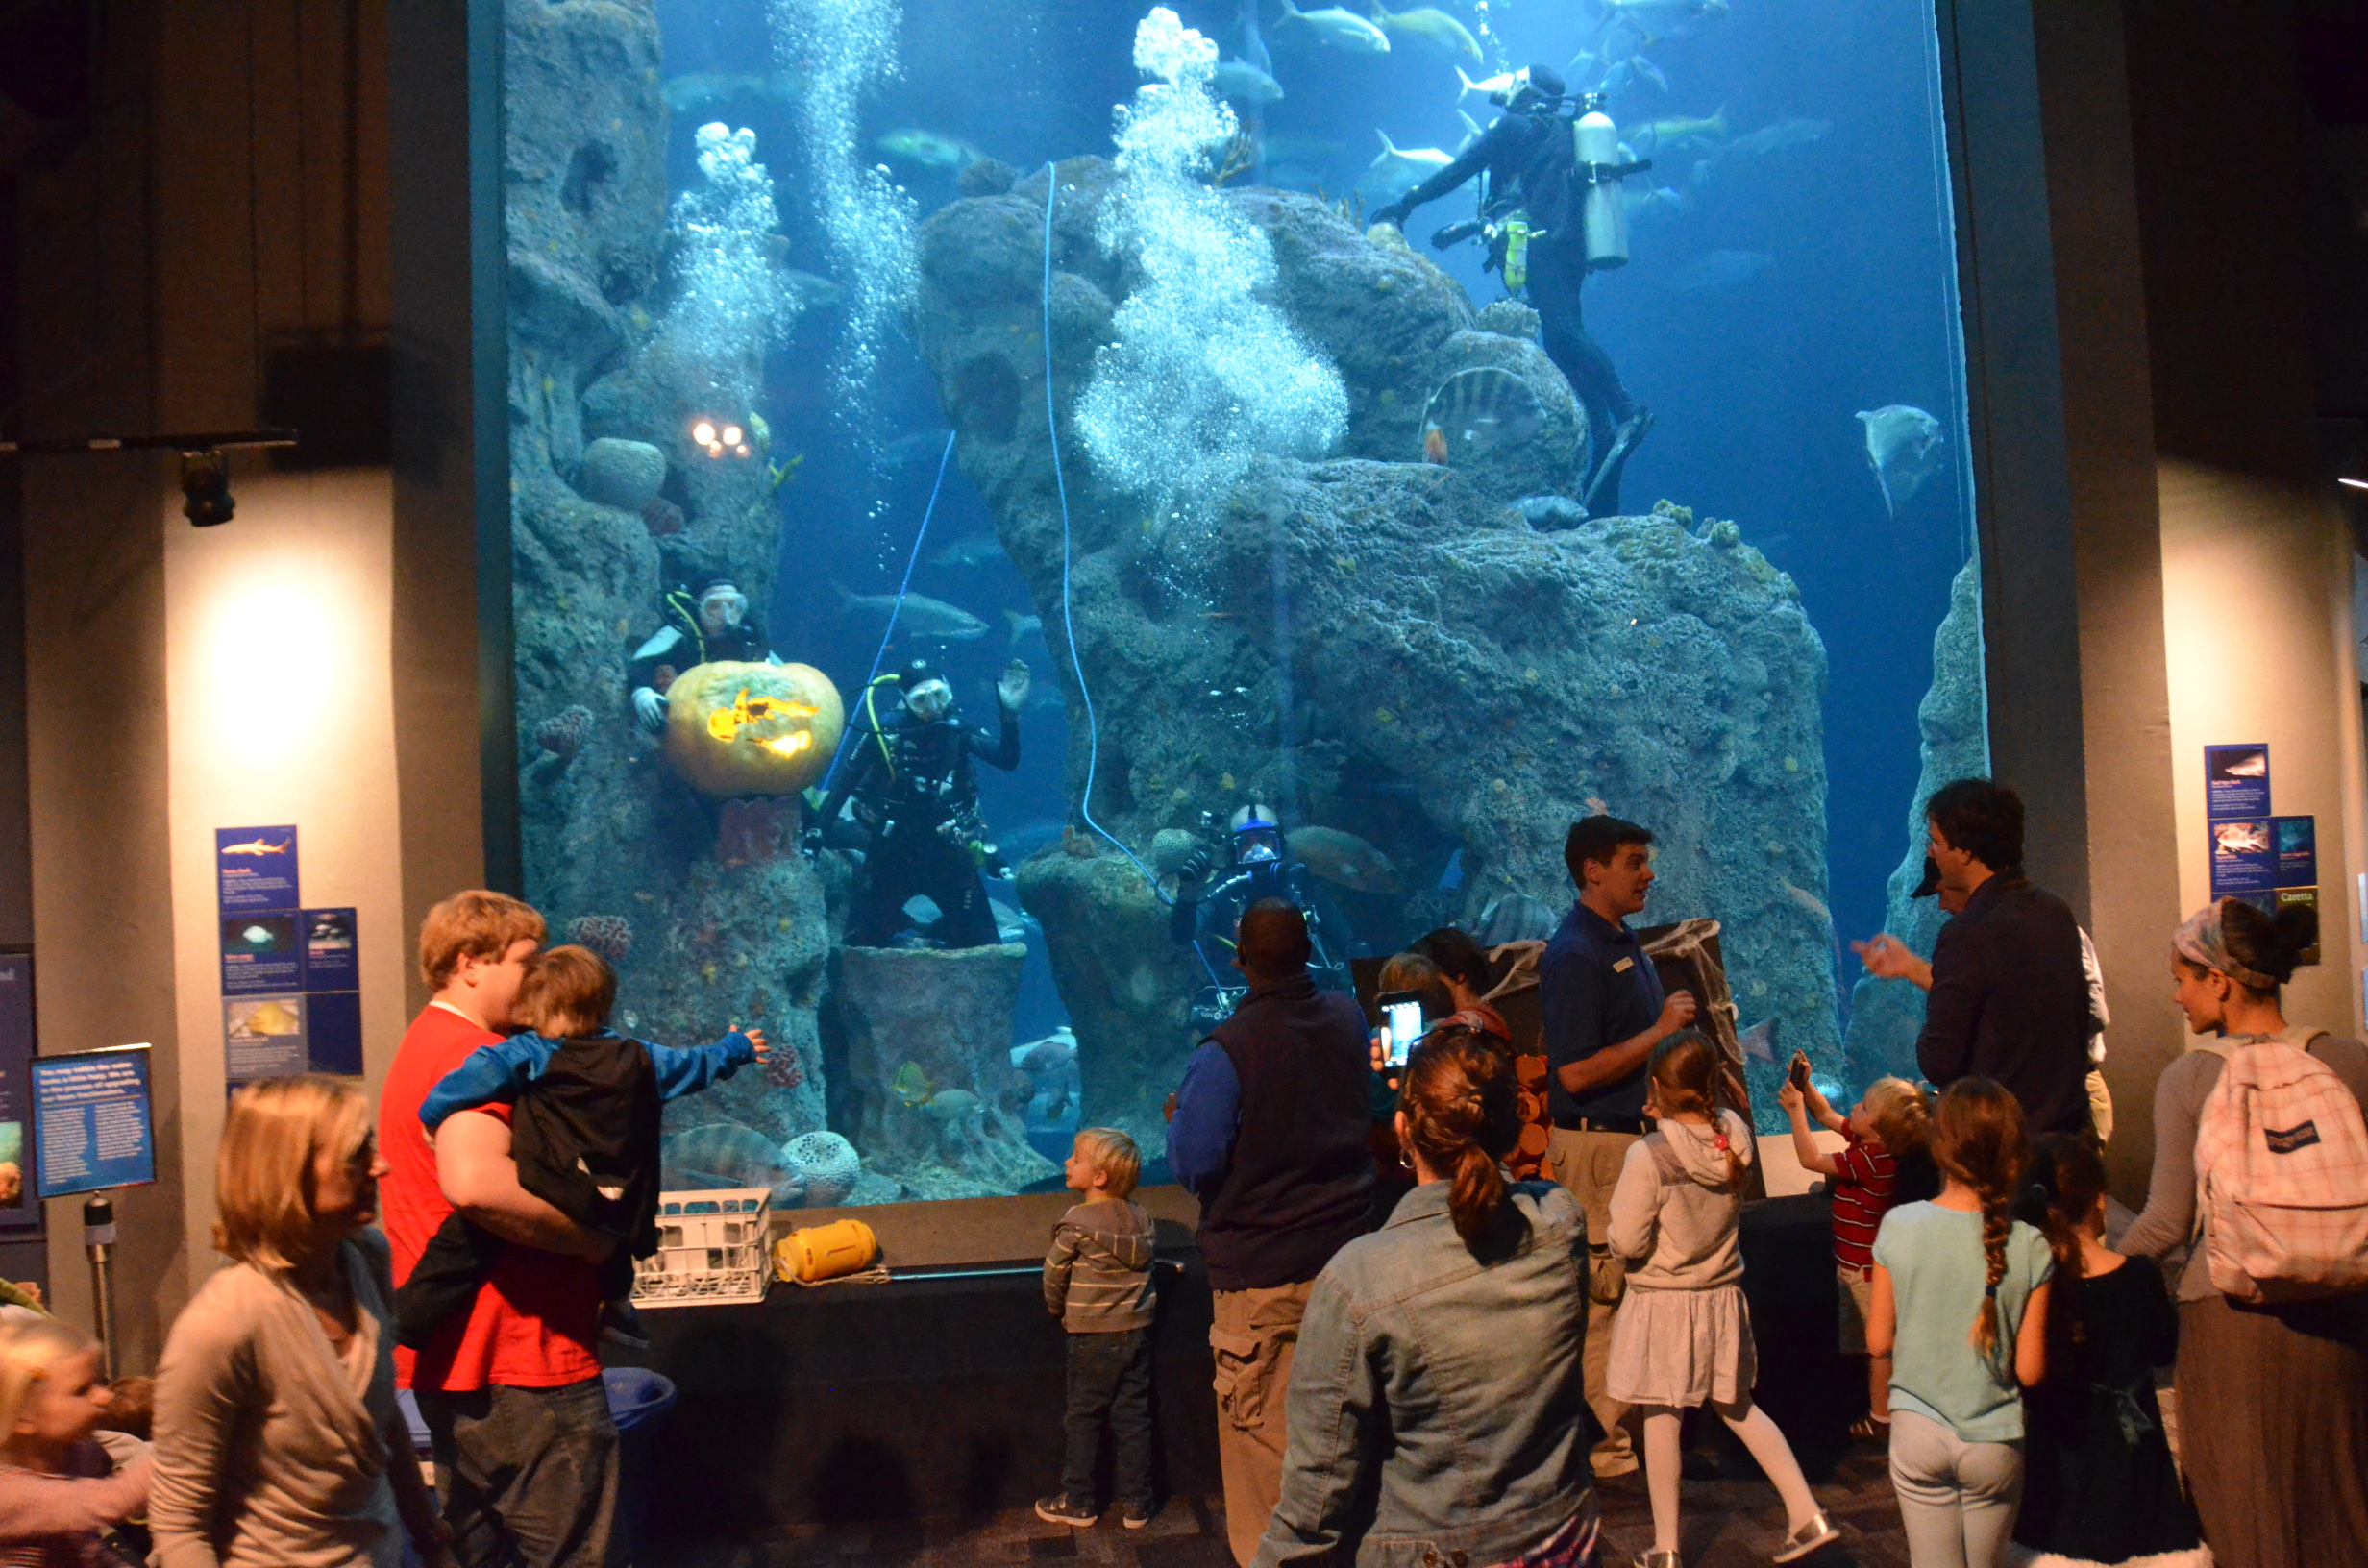 Celebrate The Sea Son At South Carolina S Aquarium The